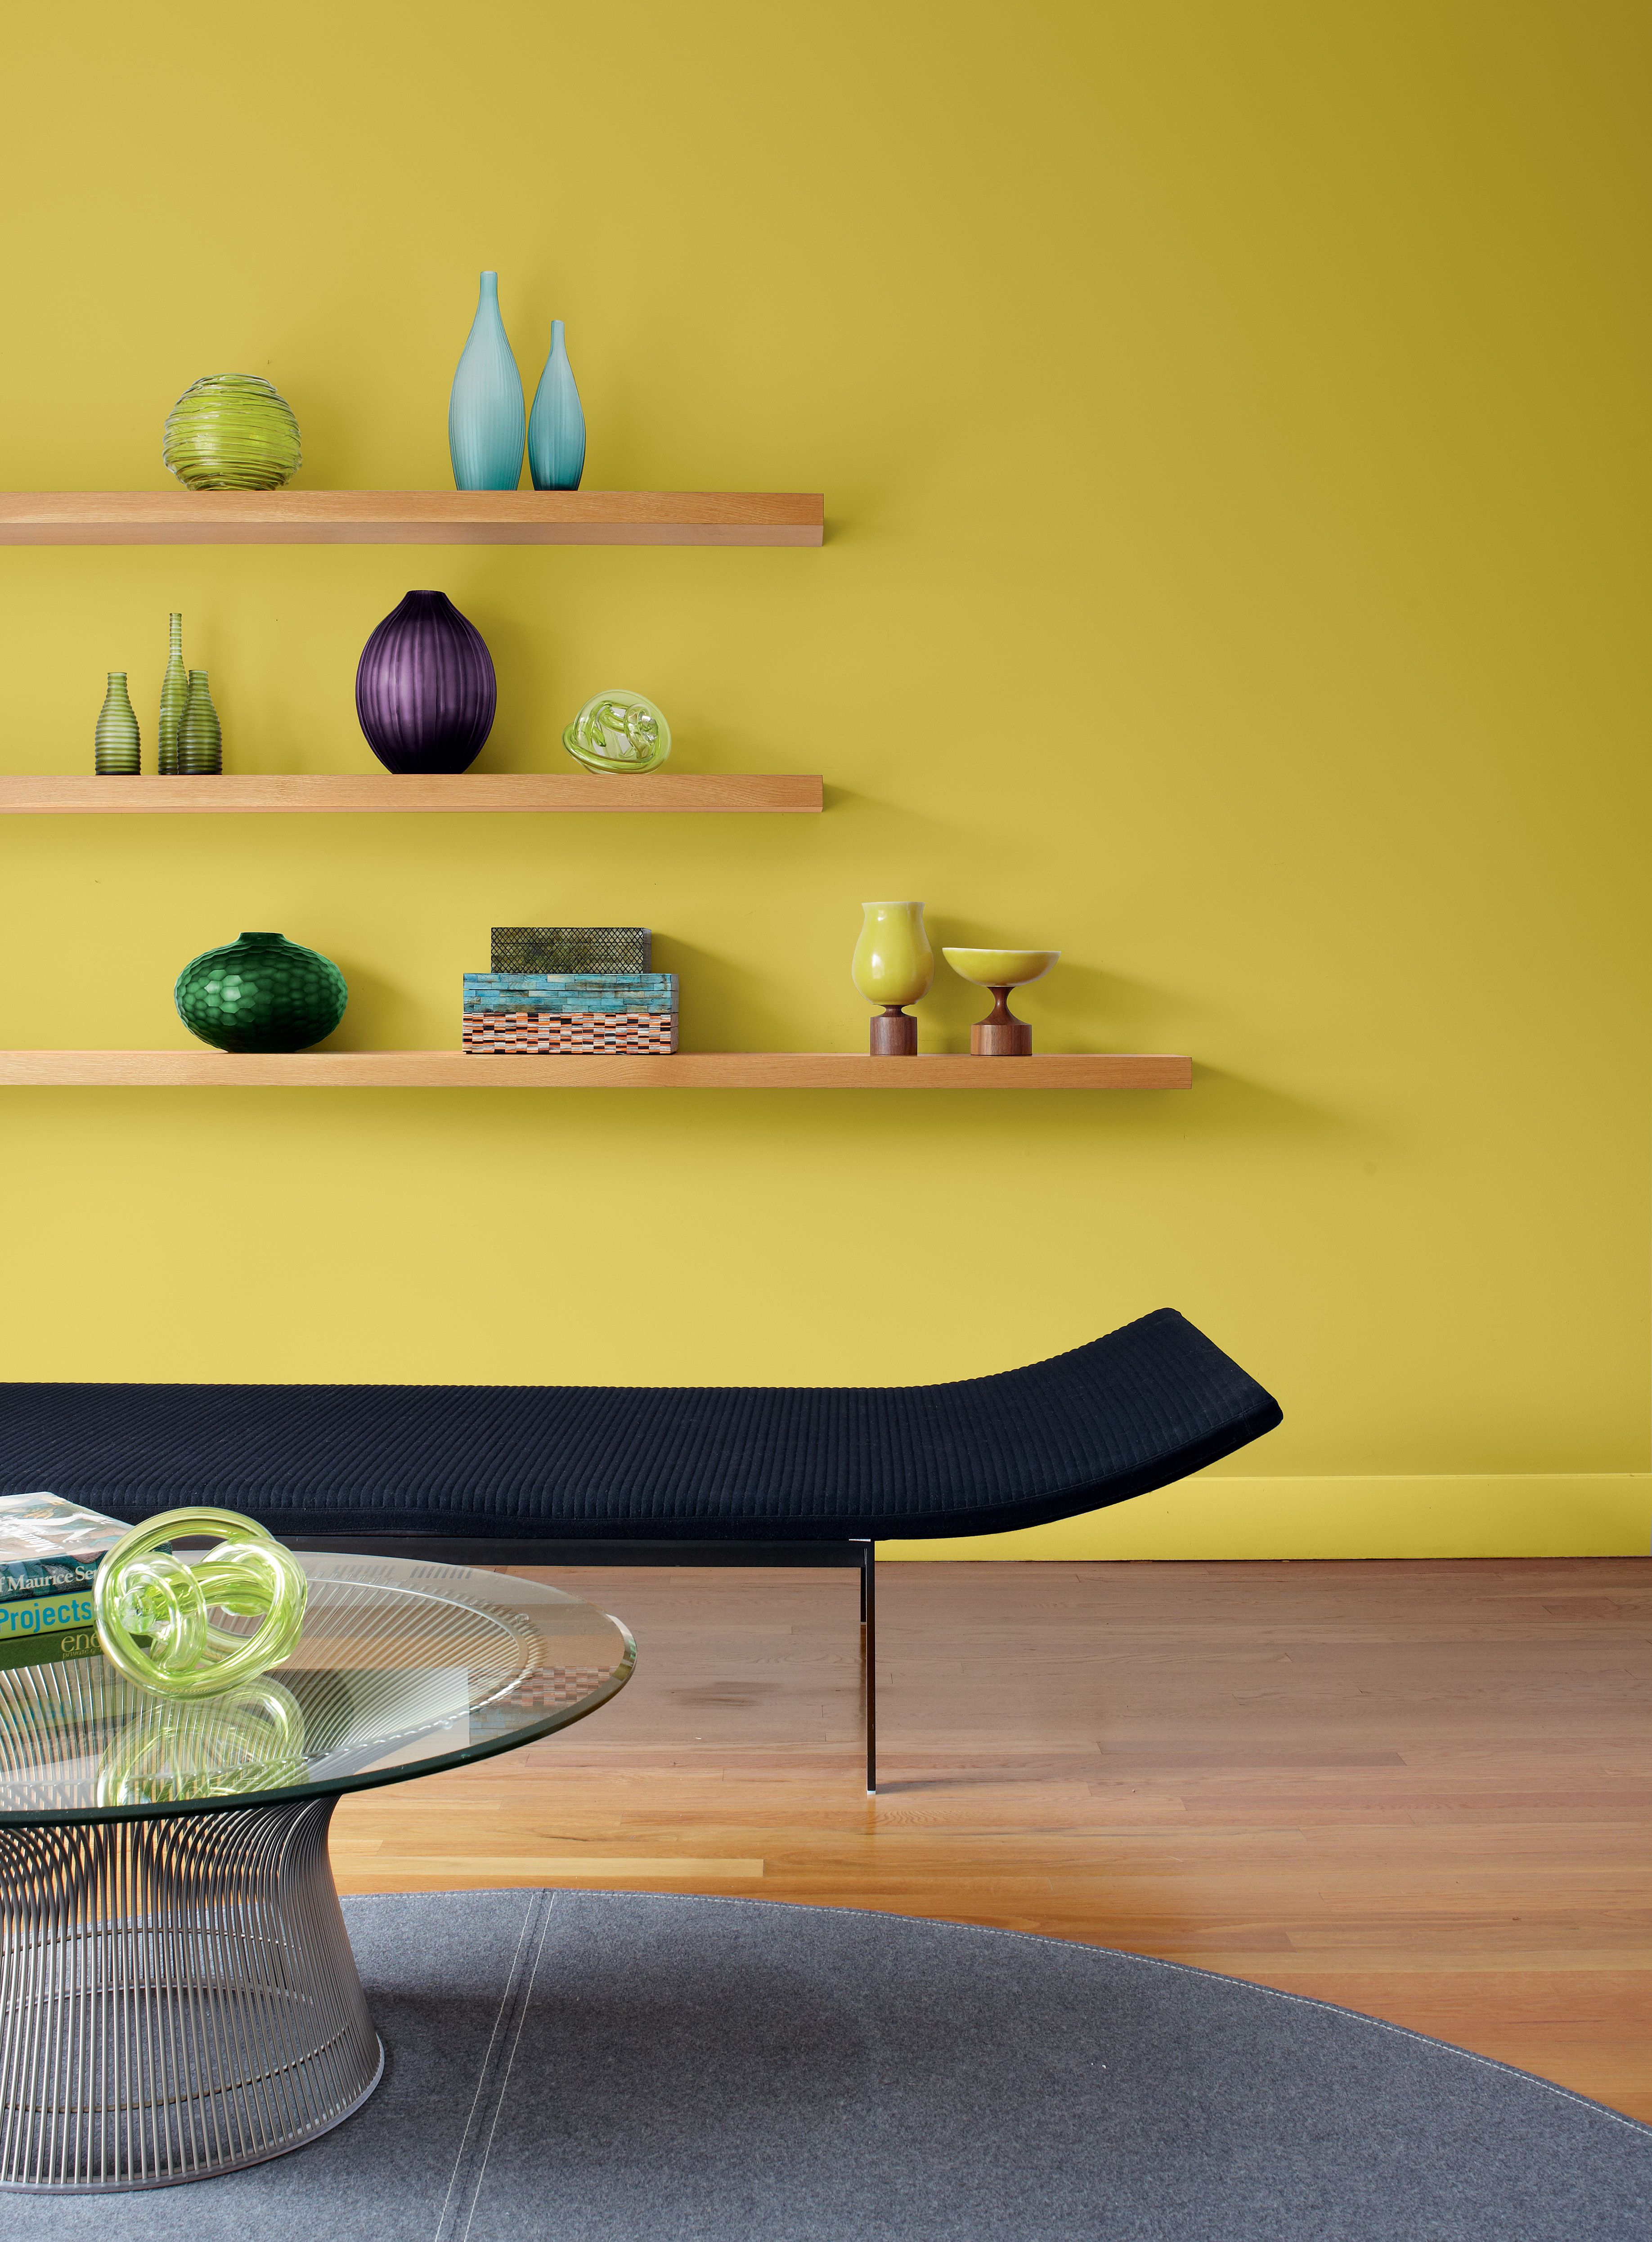 6 ways to use yellow paint at home for a burst of happiness all year round